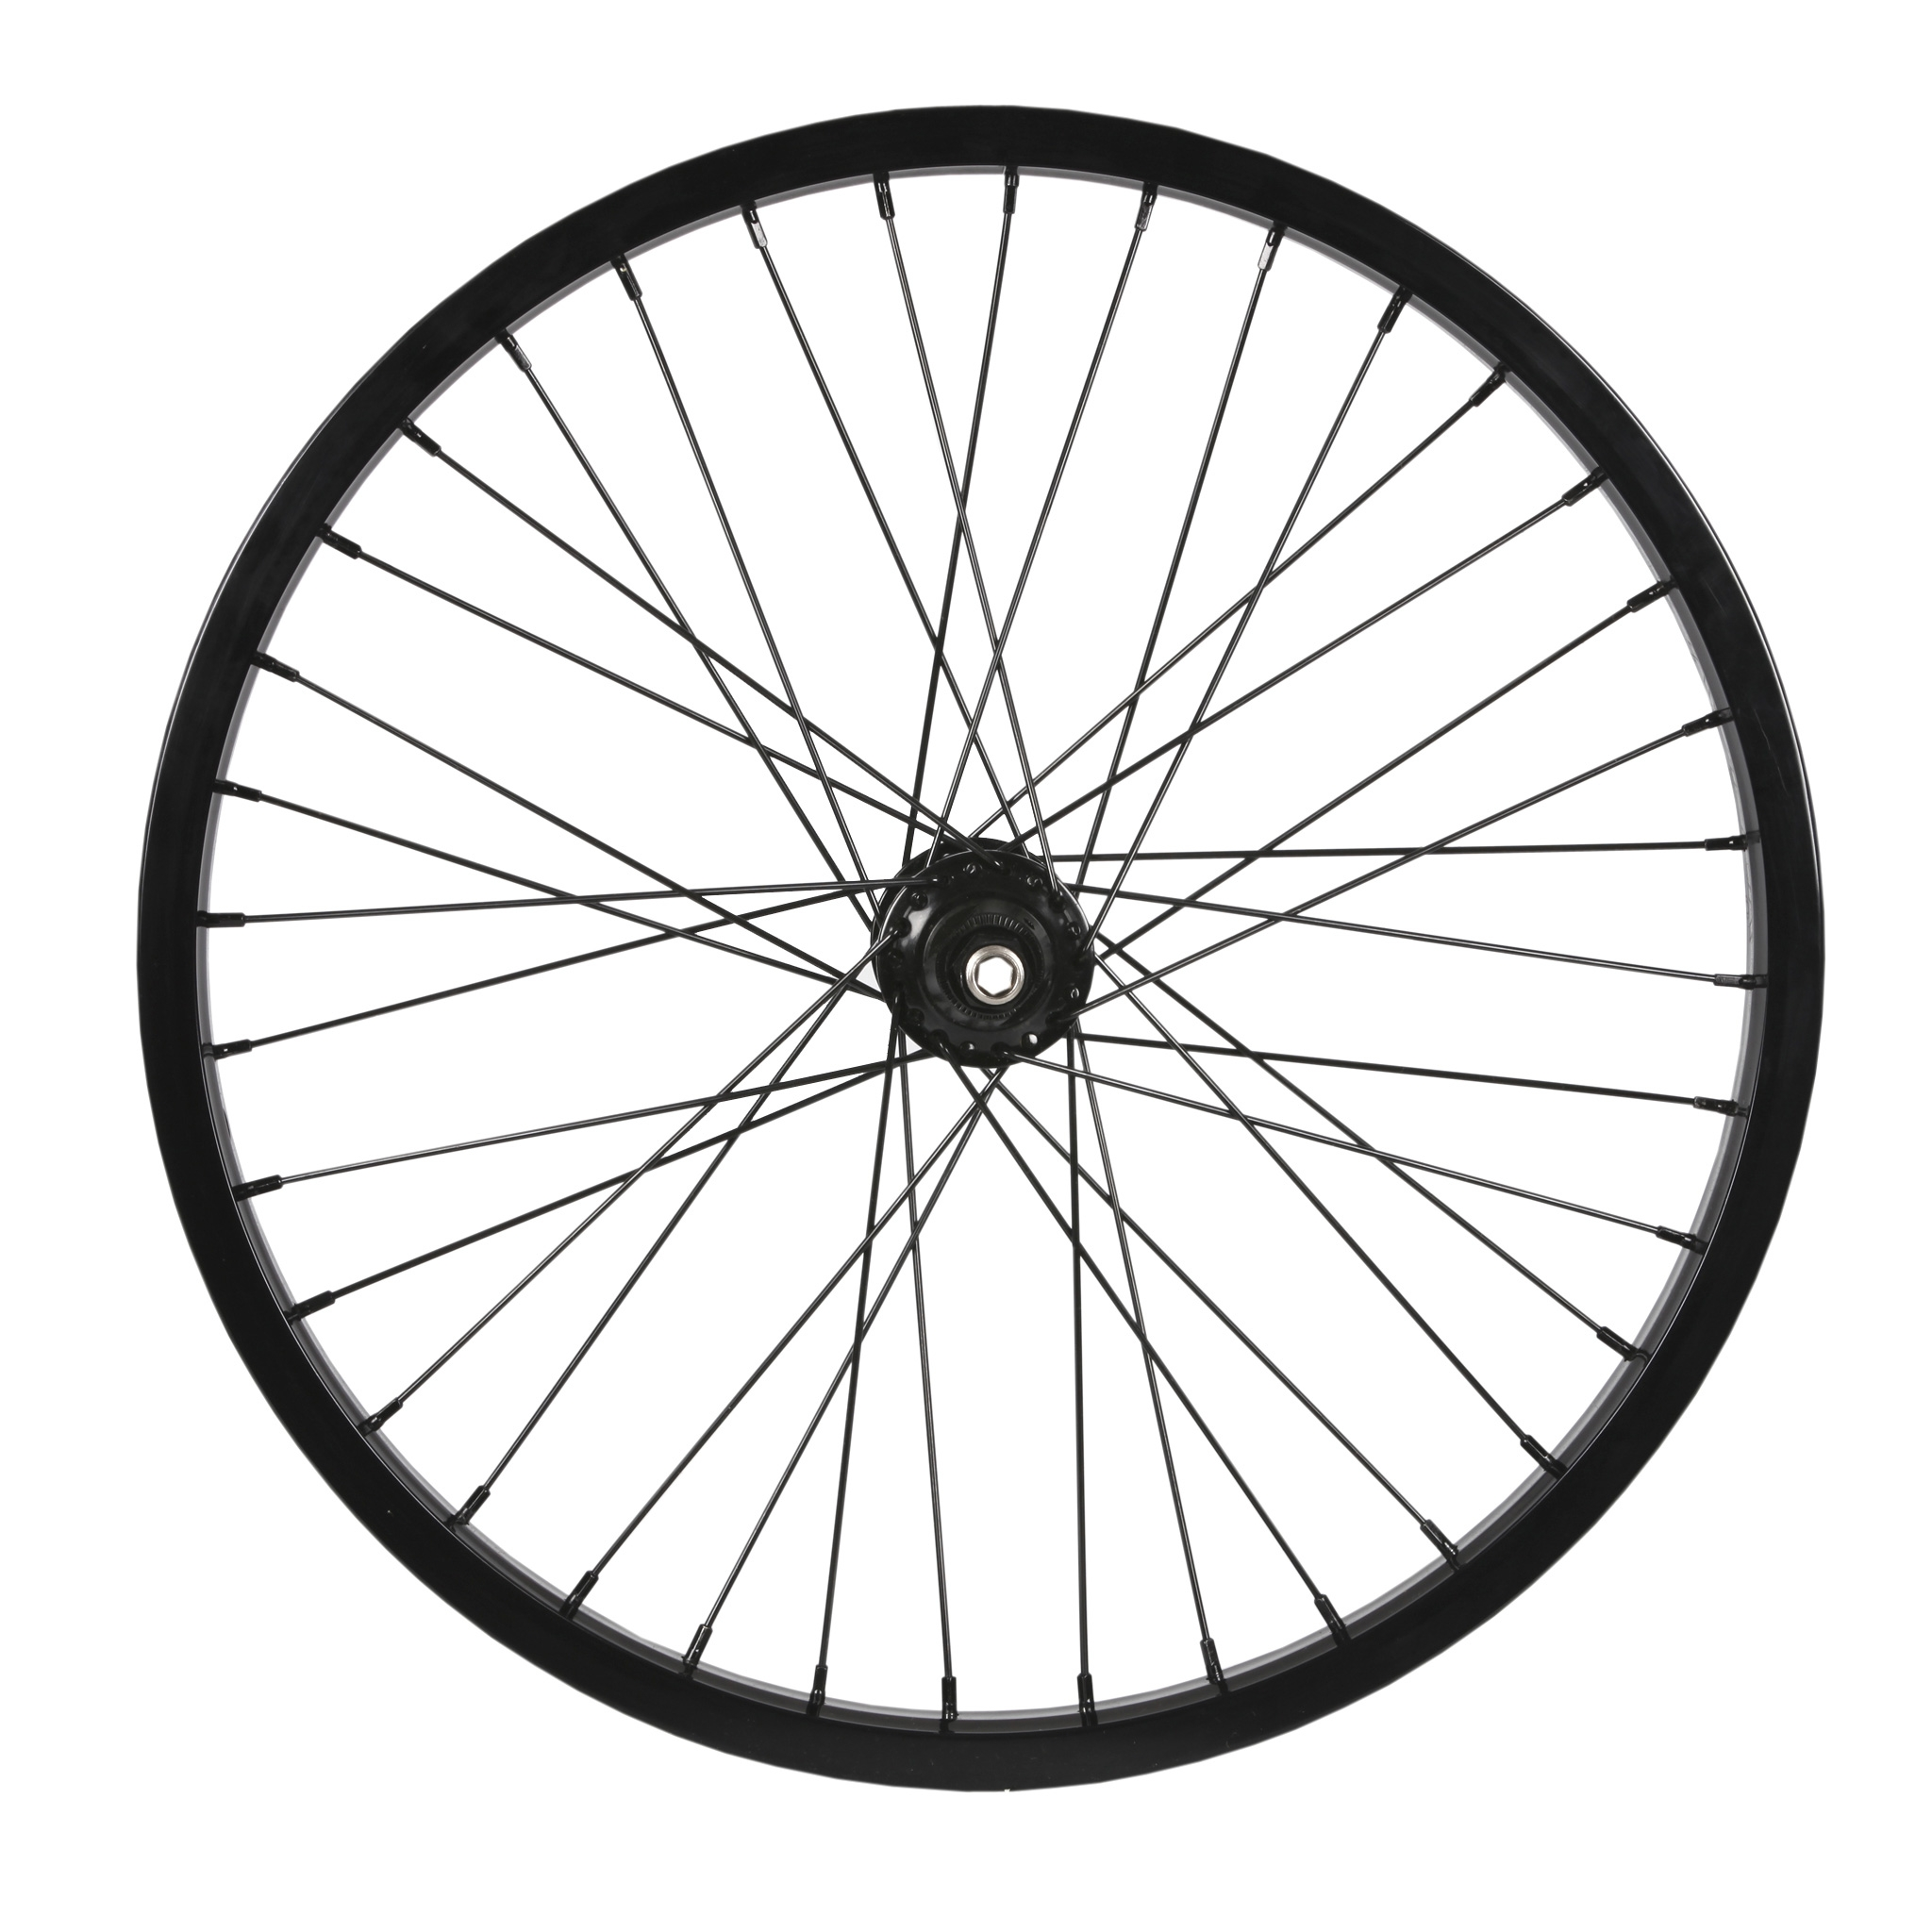 Cliparts Wagon Wheel Clip Art